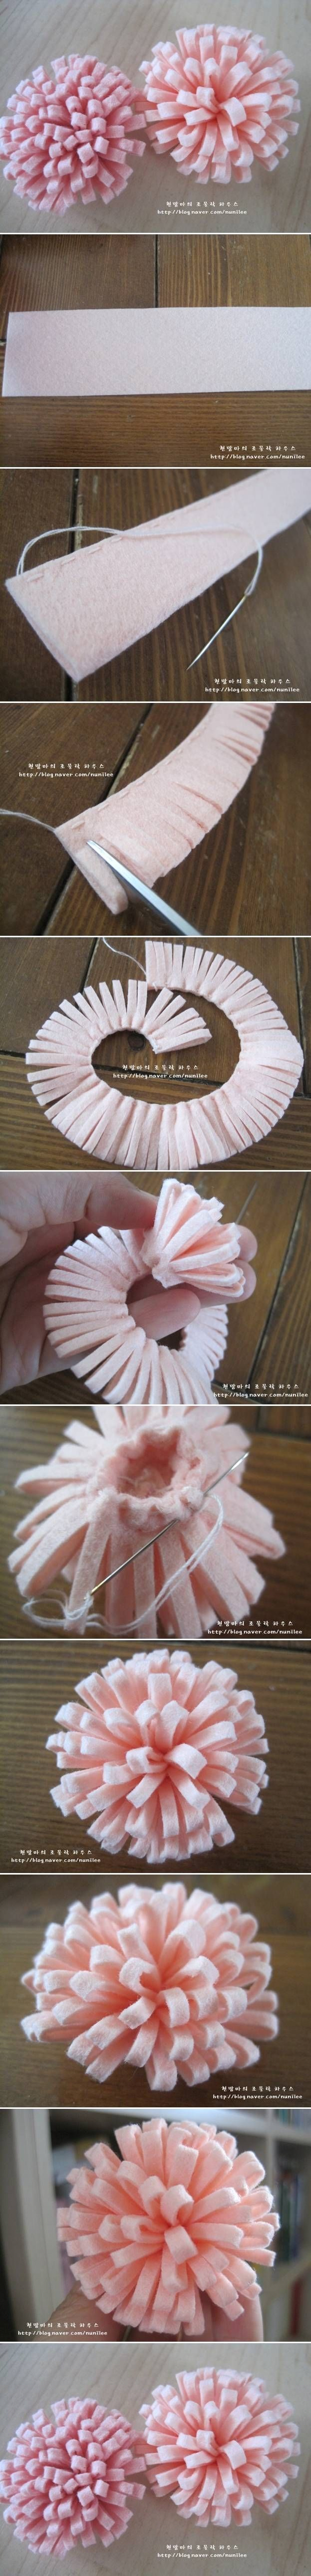 How To Make A Felt Rose Pictures, Photos, and Images for ...